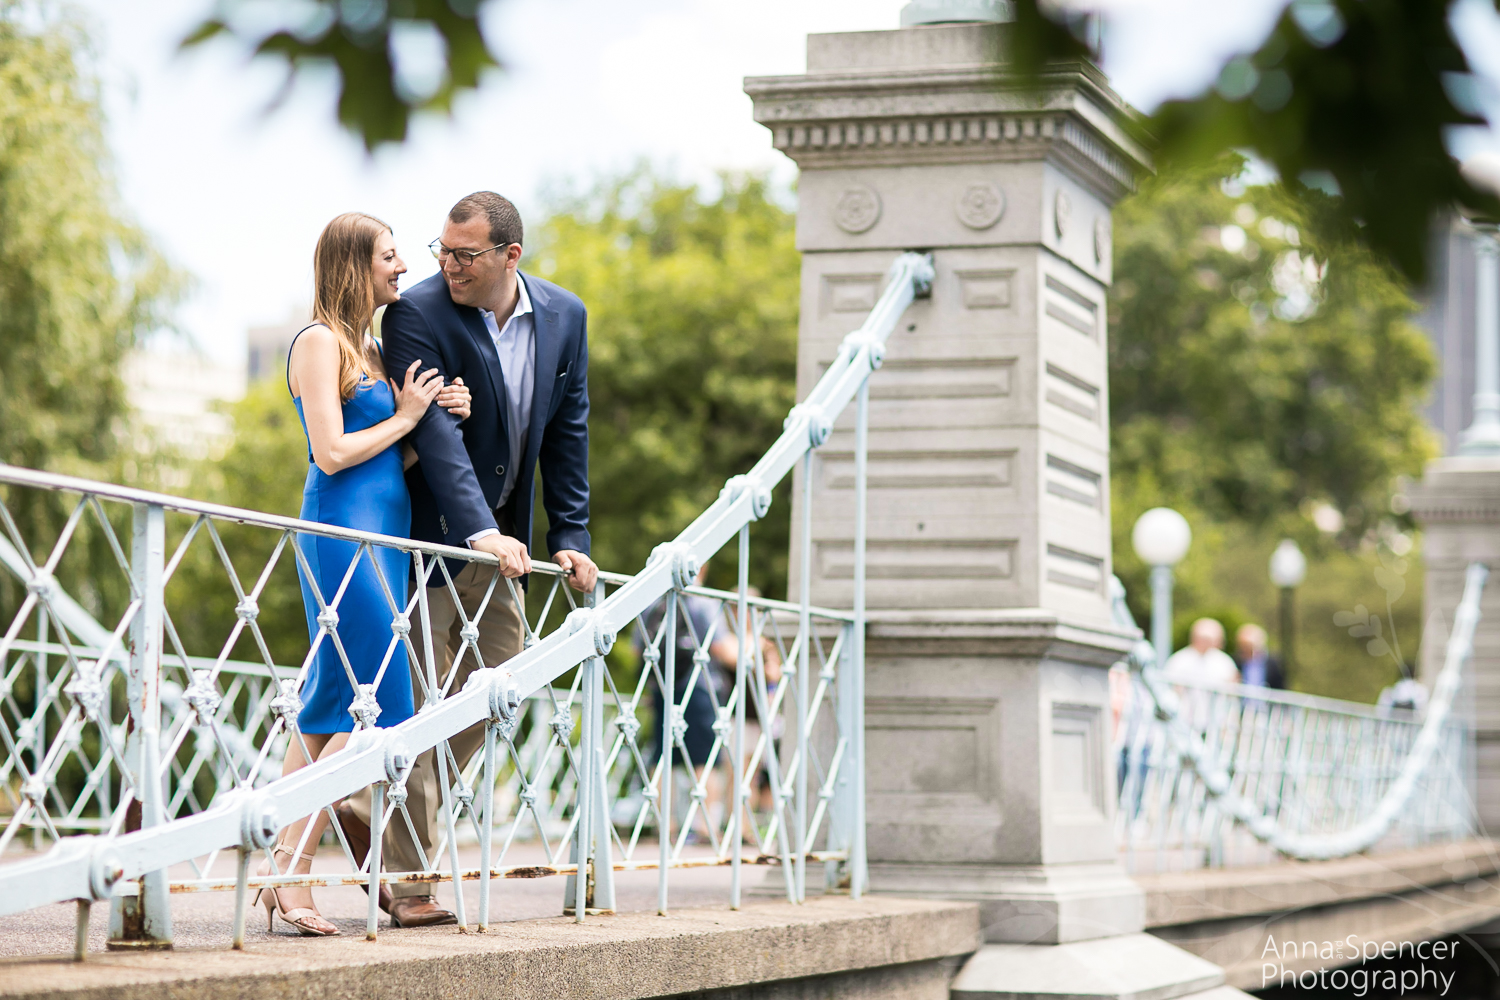 Engagement session at Boston Public Garden